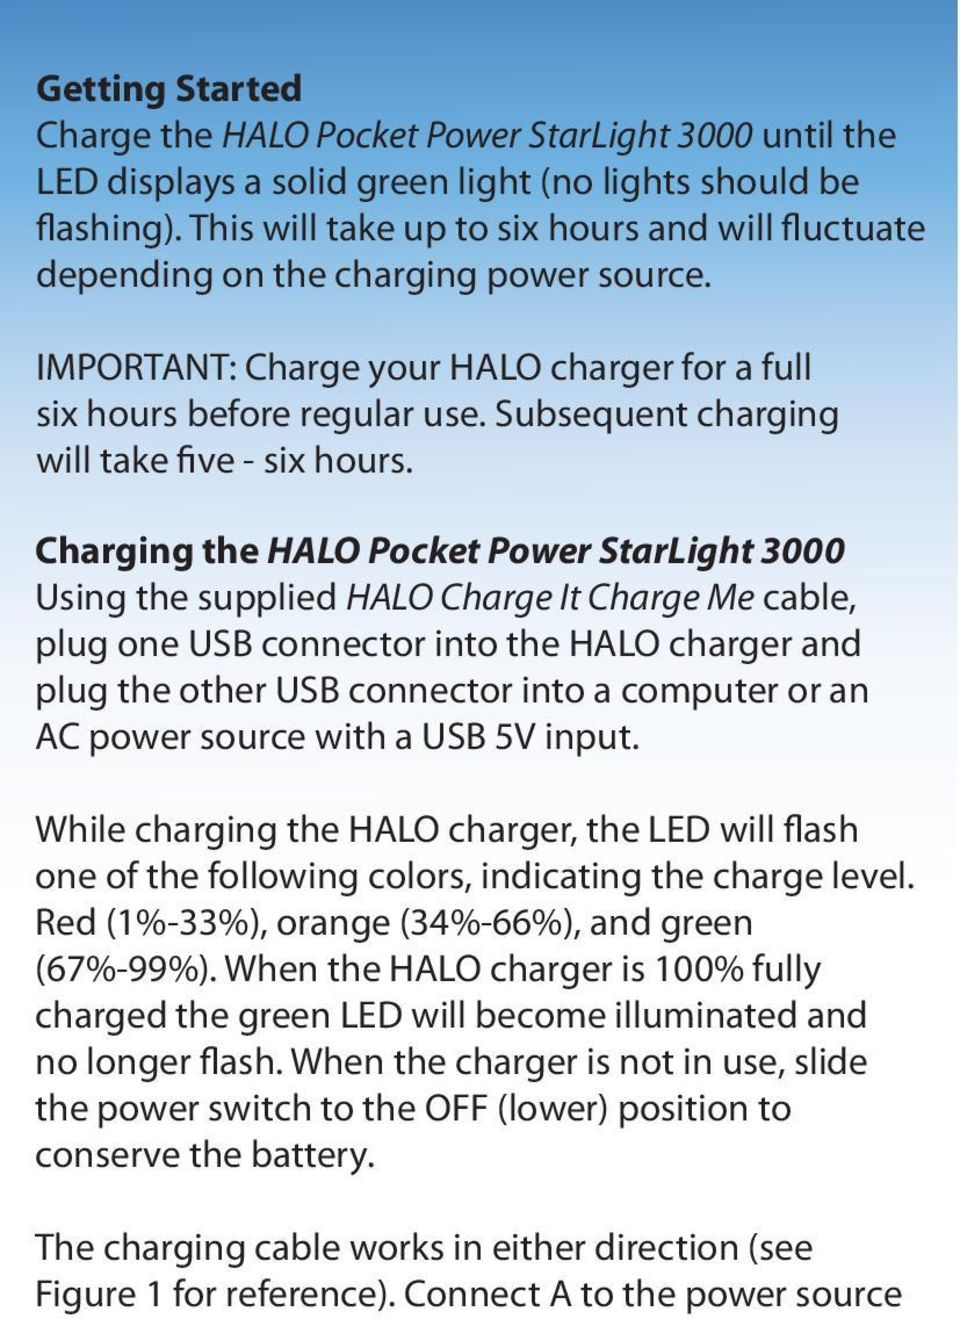 Subsequent charging will take five - six hours.